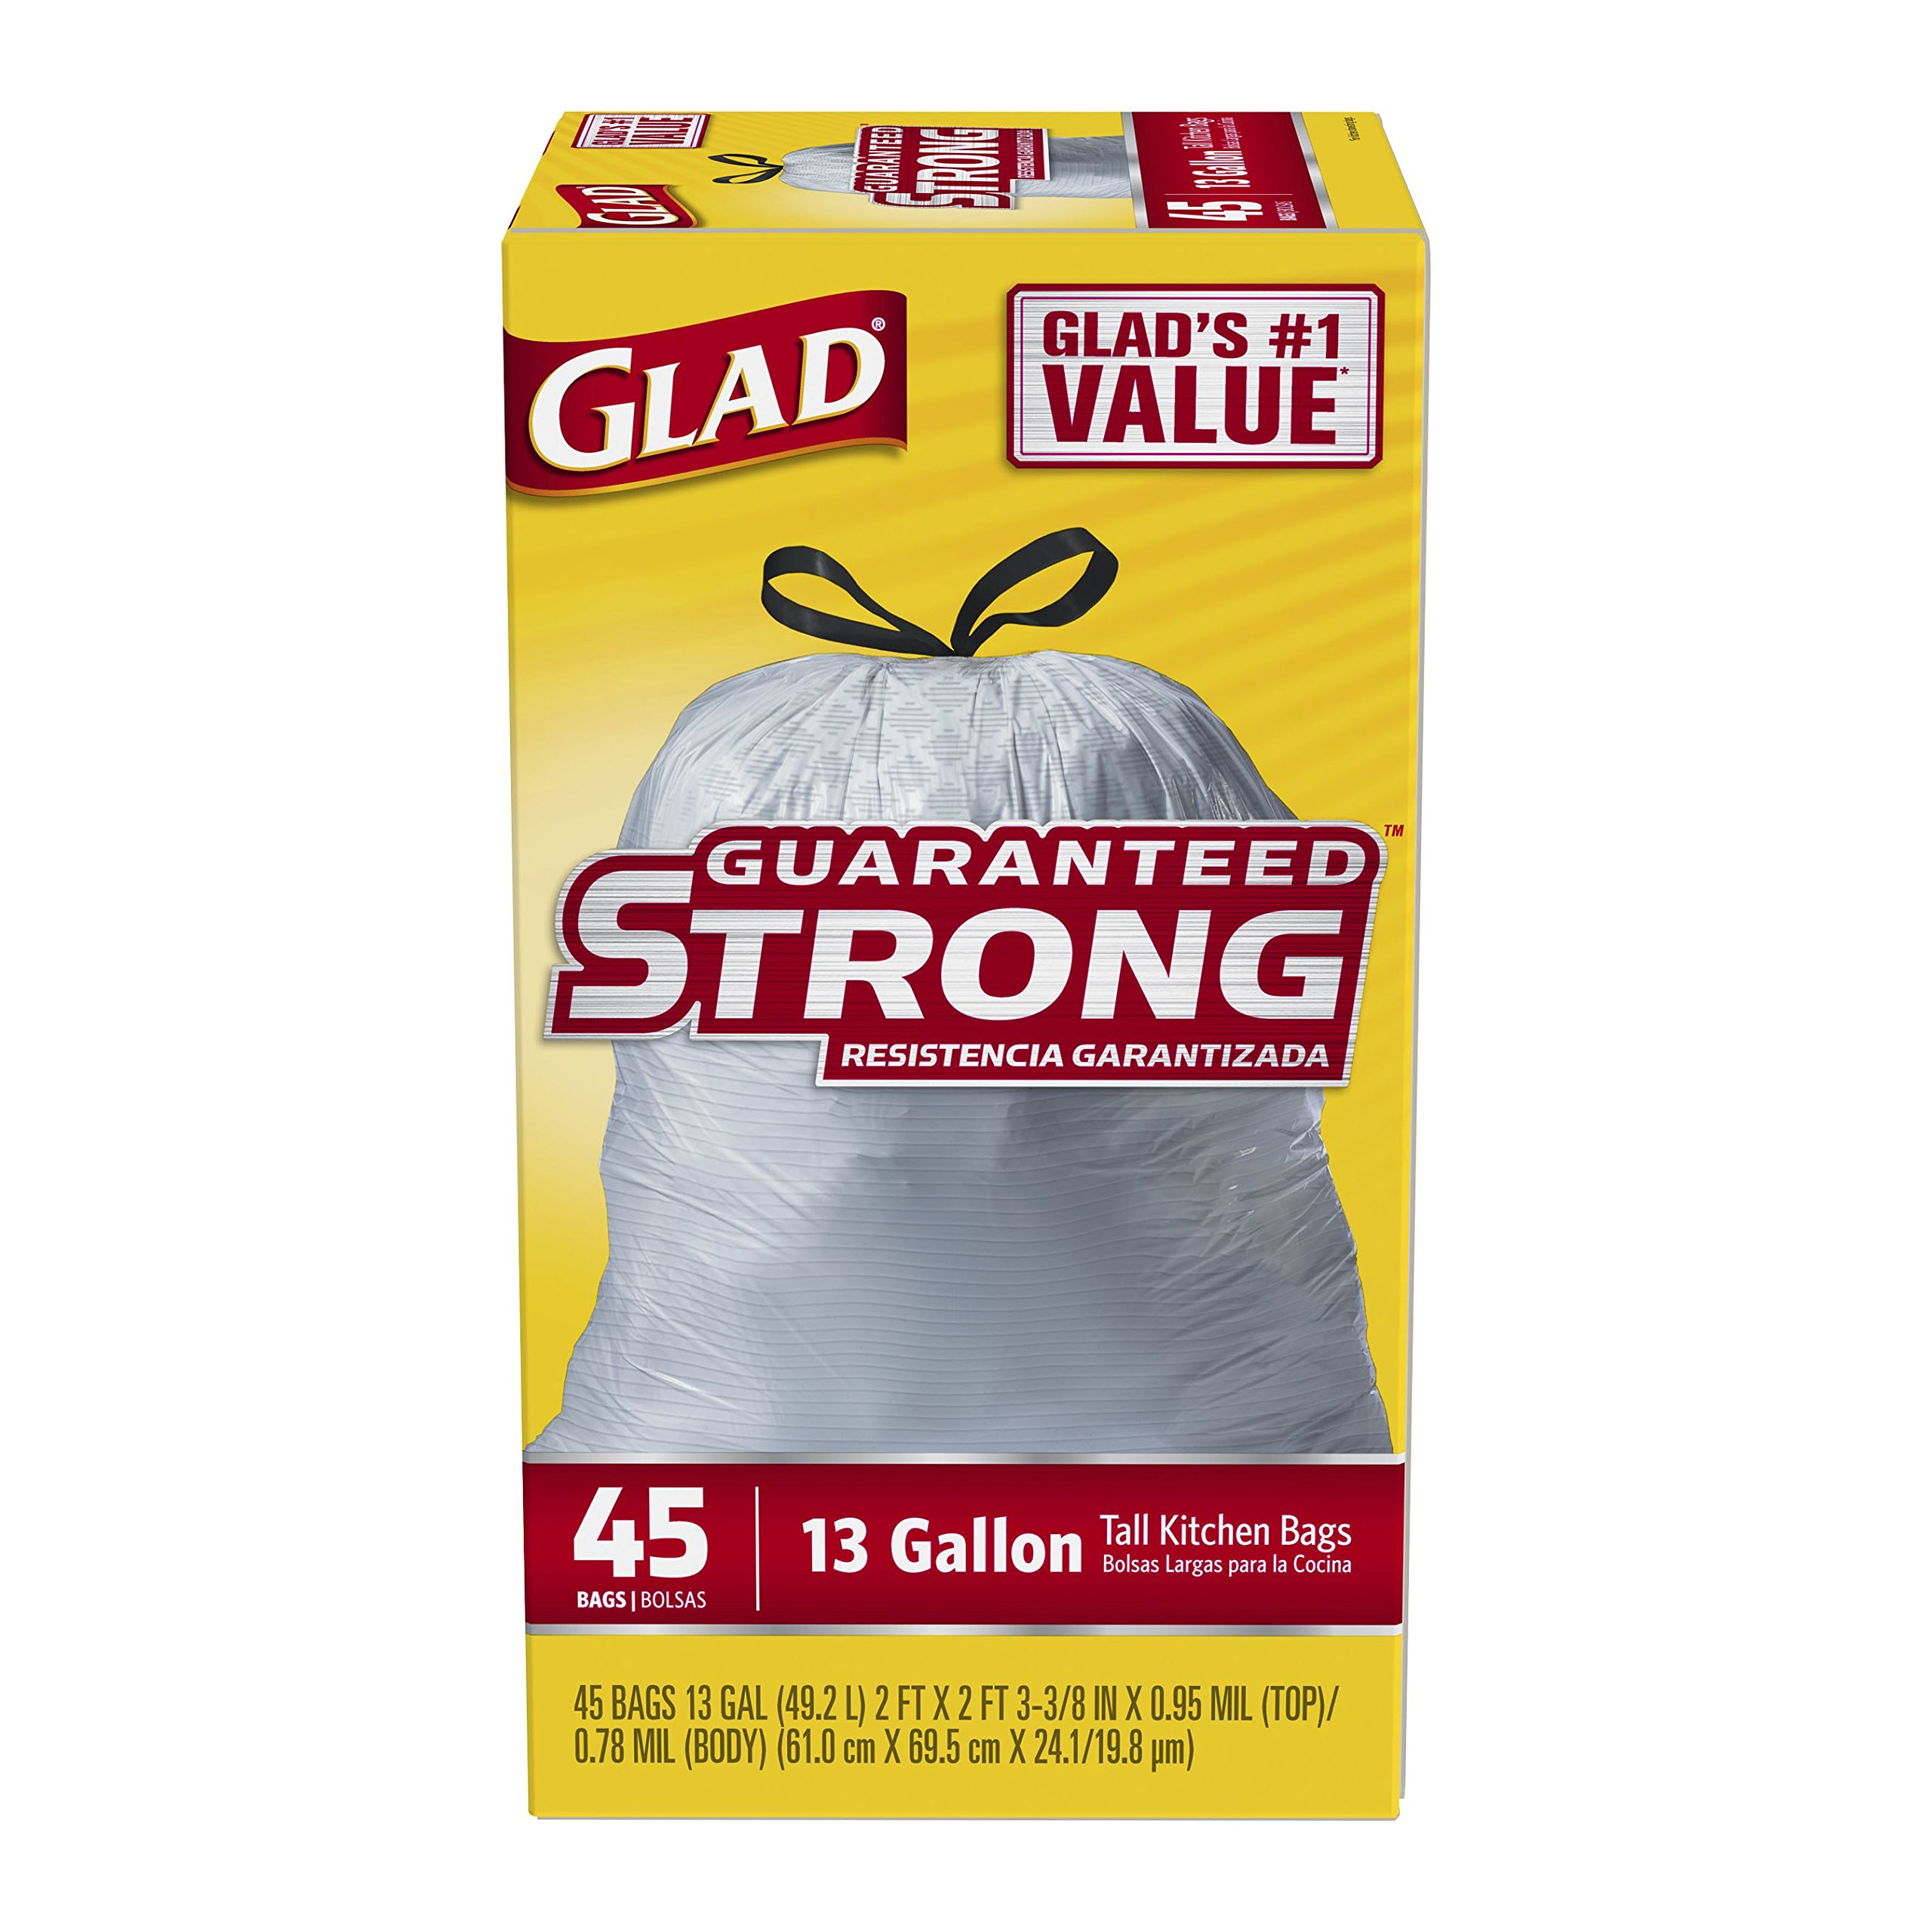 "Glad Strong 13-gal Tall Kitchen Trash Bags - 13 Gal - 27"" X 24"" - 1 Mil [25 Micron] Thickness - White - 1each - Kitchen, Office, School, Breakroom, Restaurant (cox-78362)"